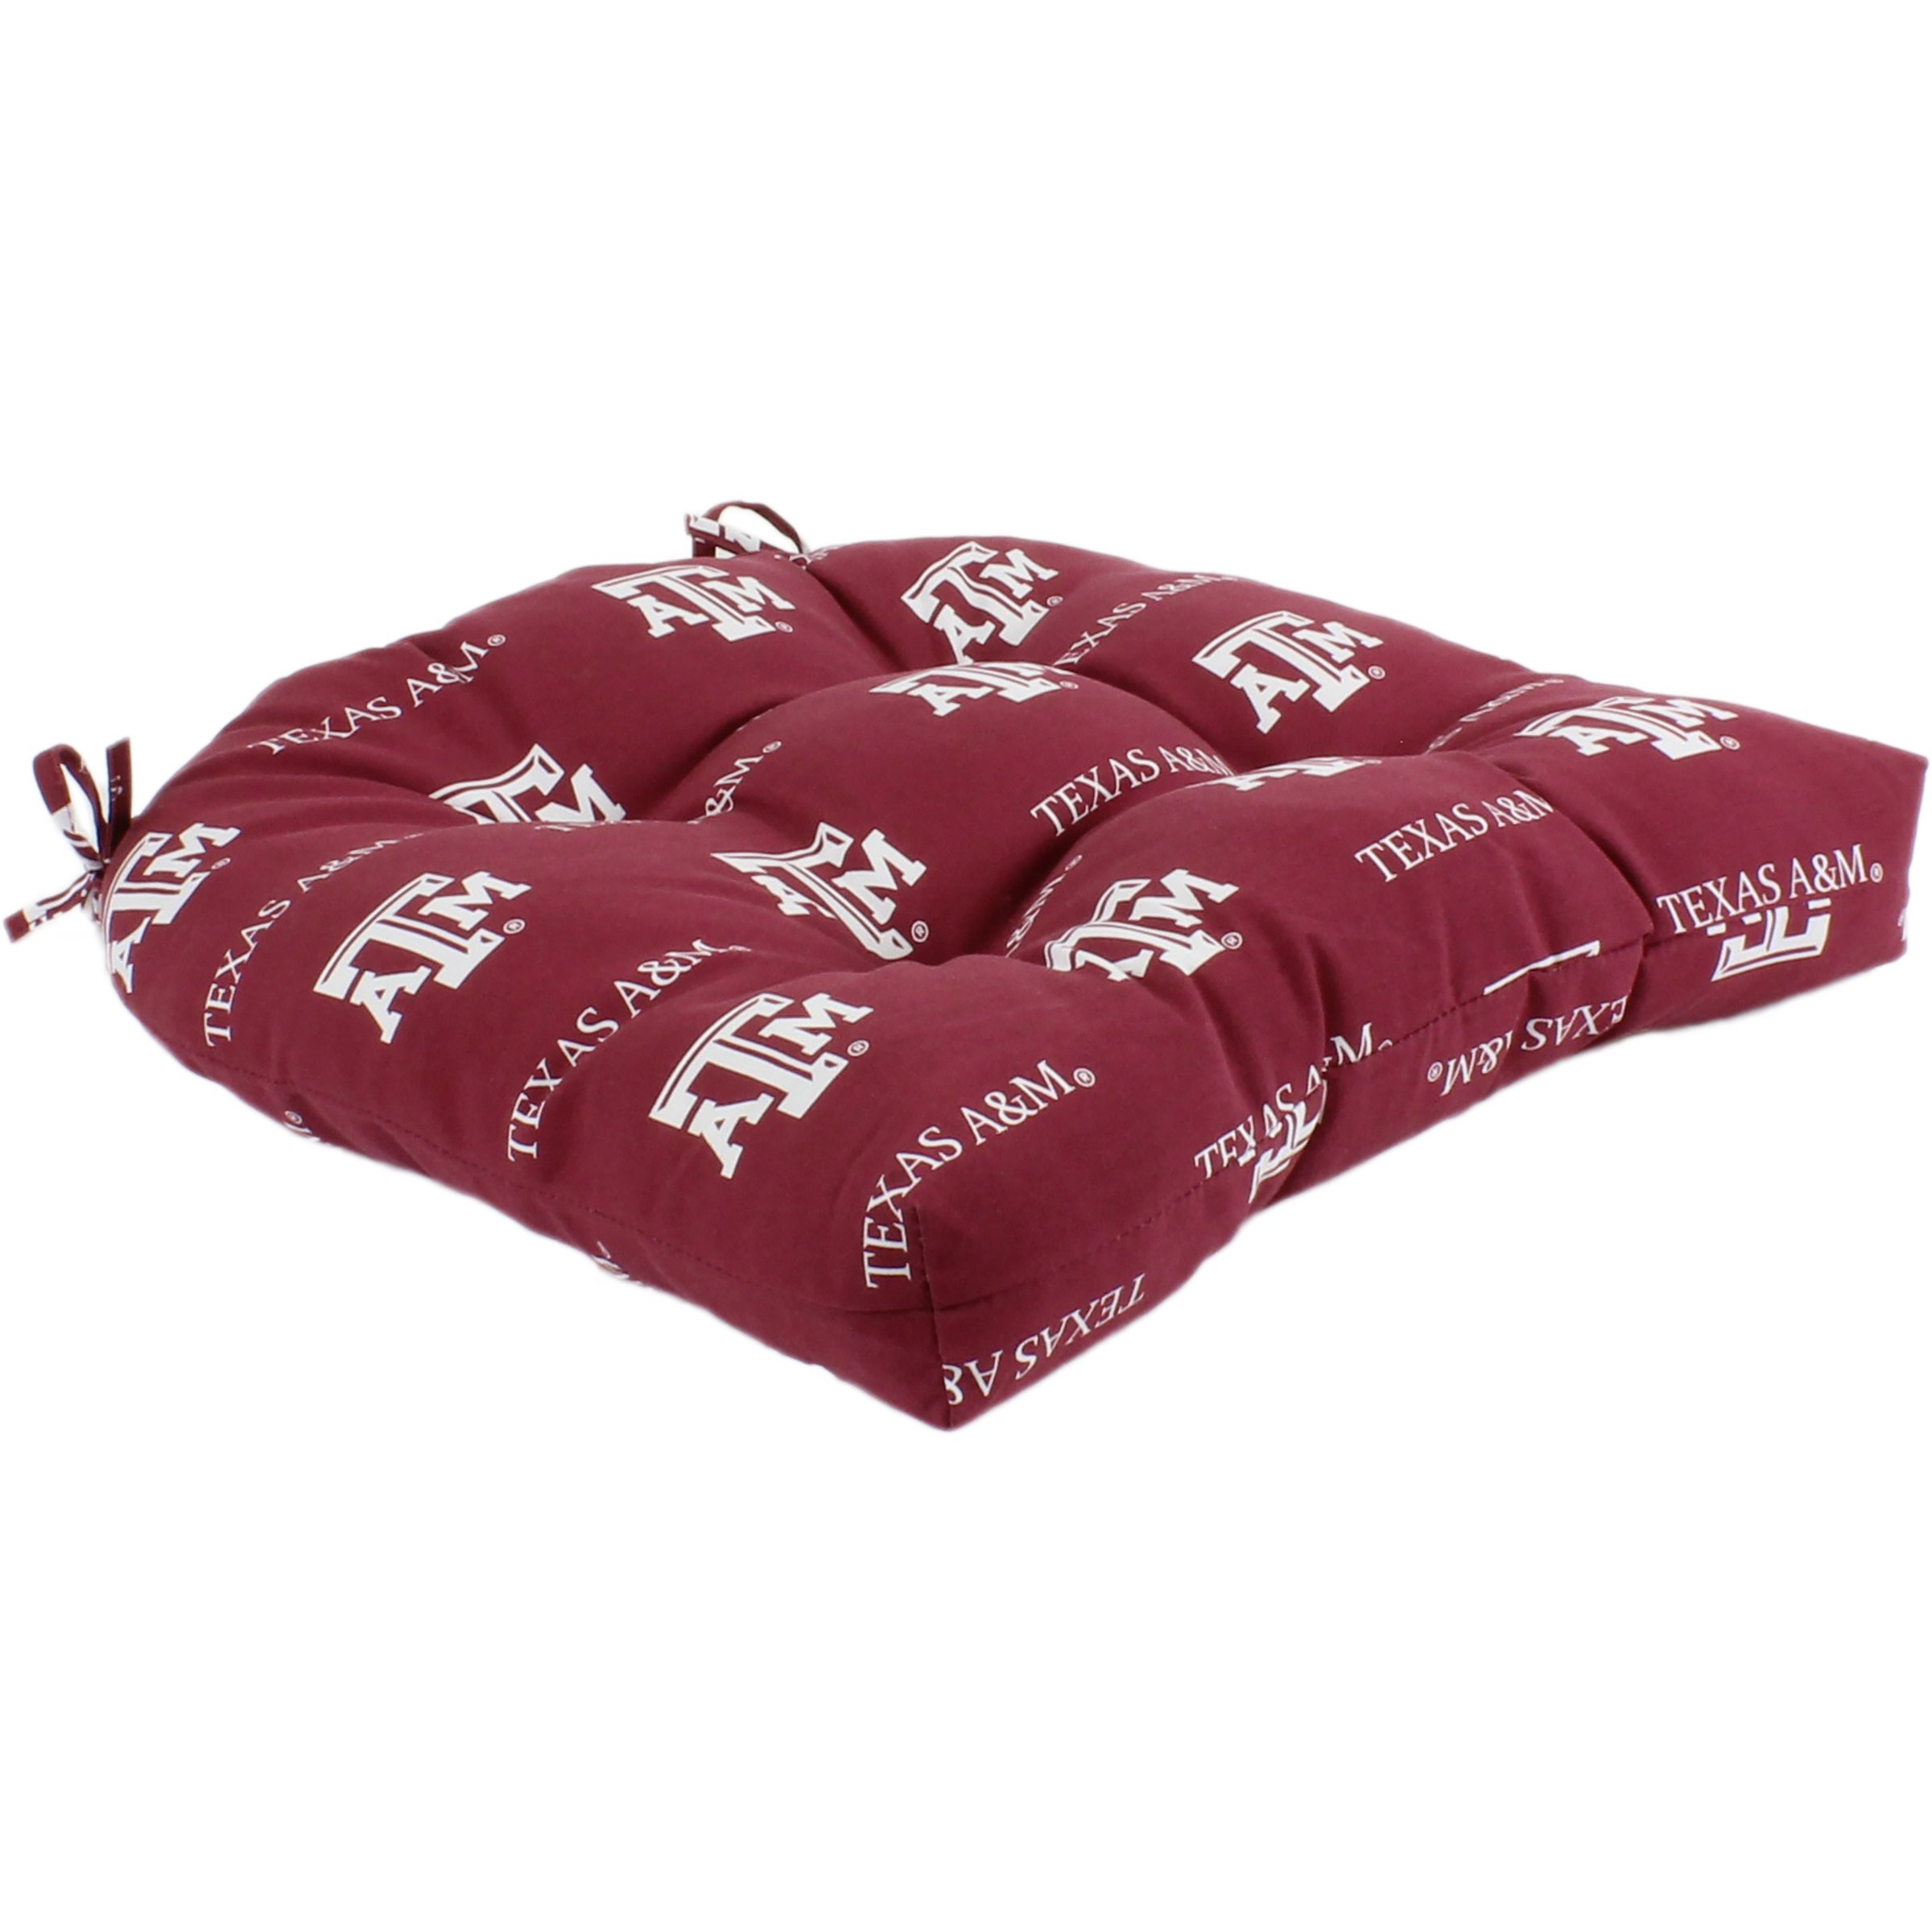 College Covers Texas a&M Aggies Indoor/Outdoor Seat Patio D Cushion, 20'' x 20'', Red